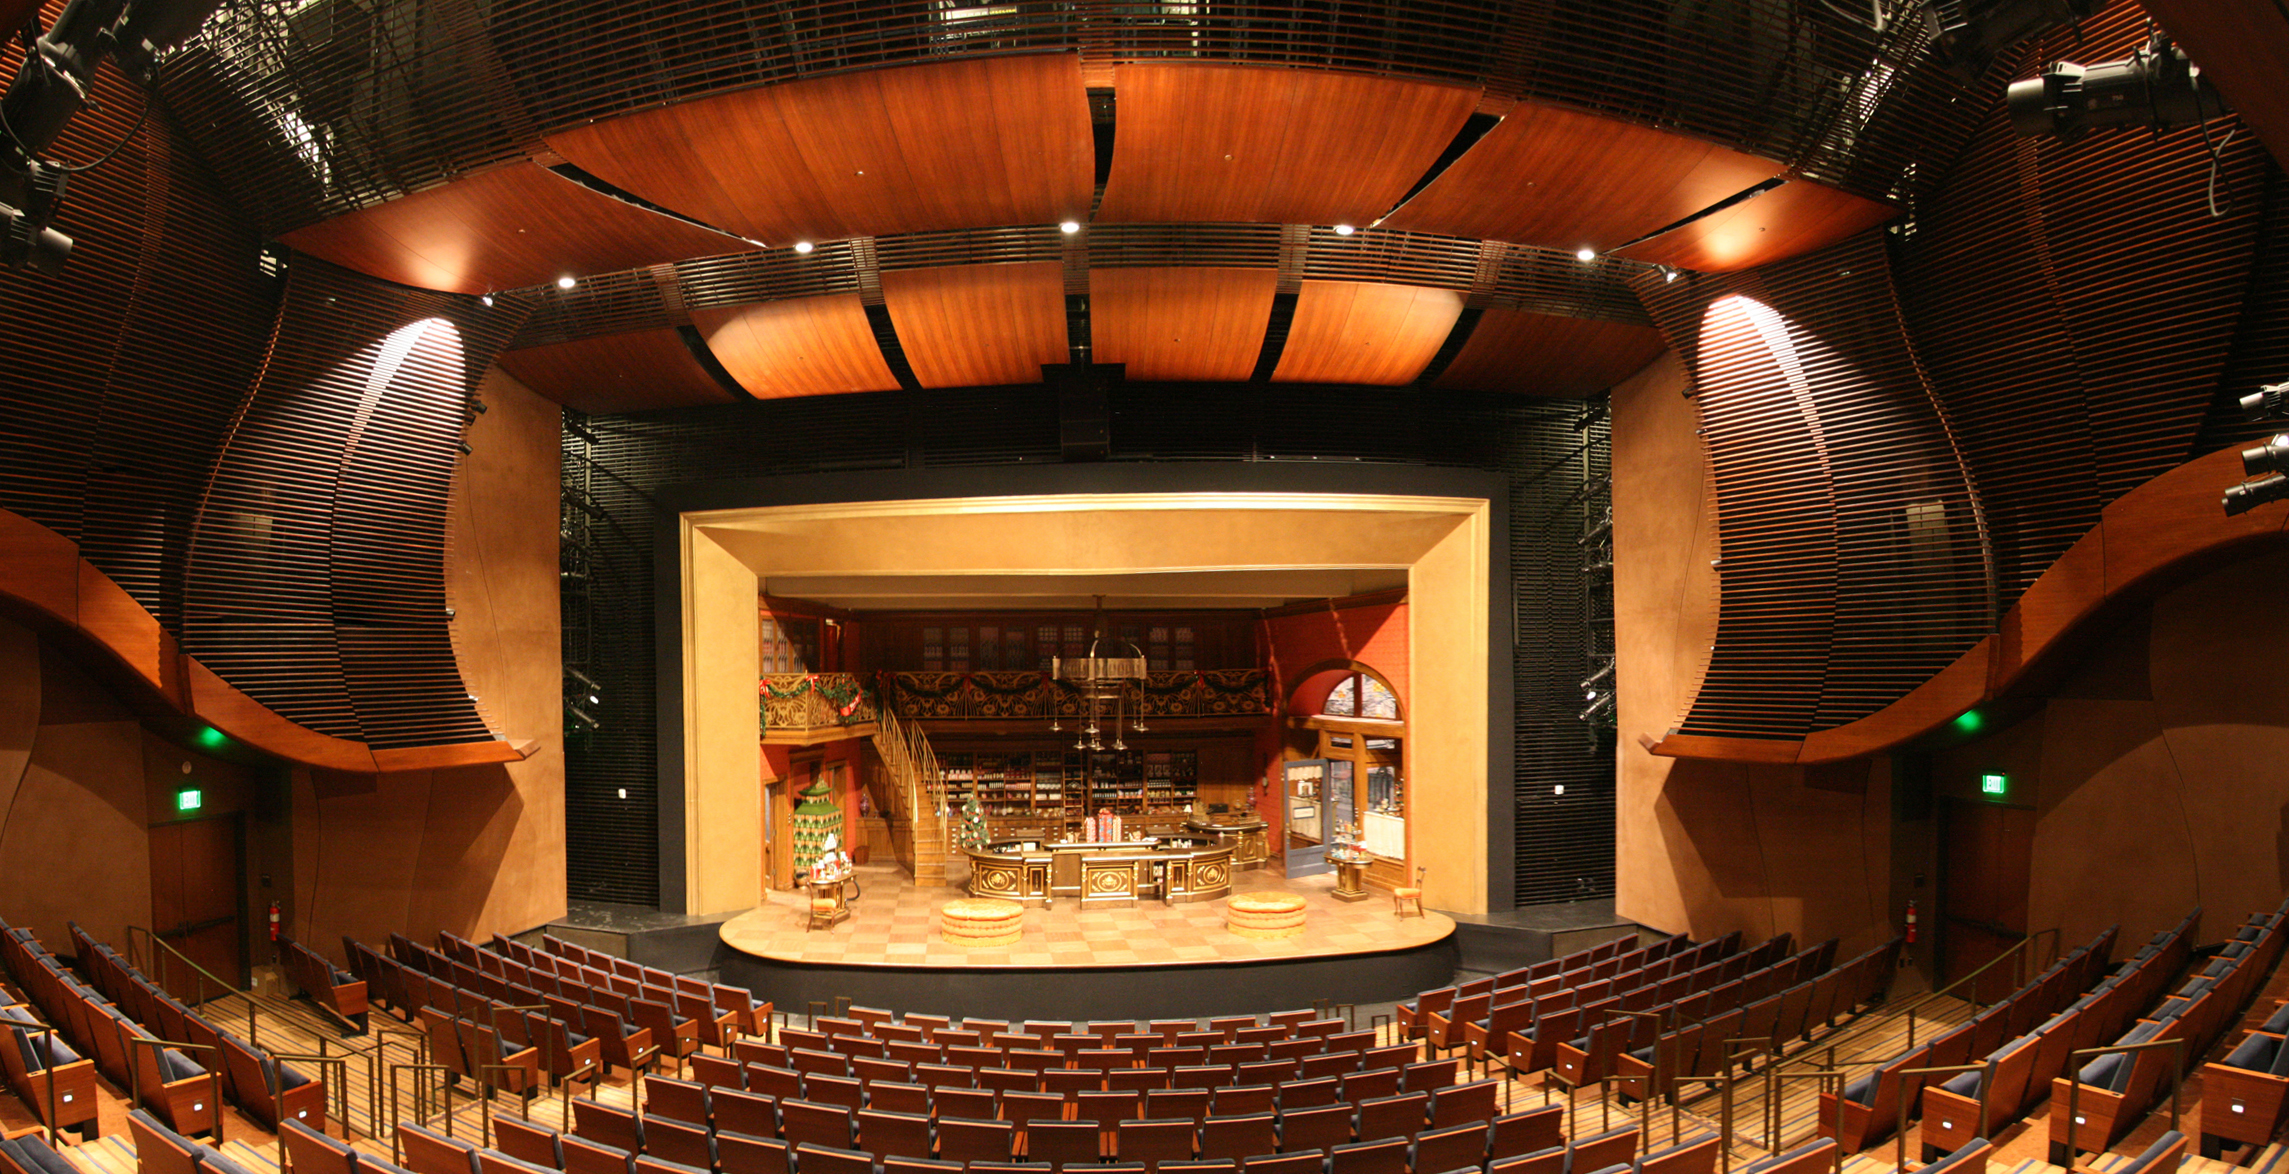 The Making Of The Wallis Annenberg Center For The